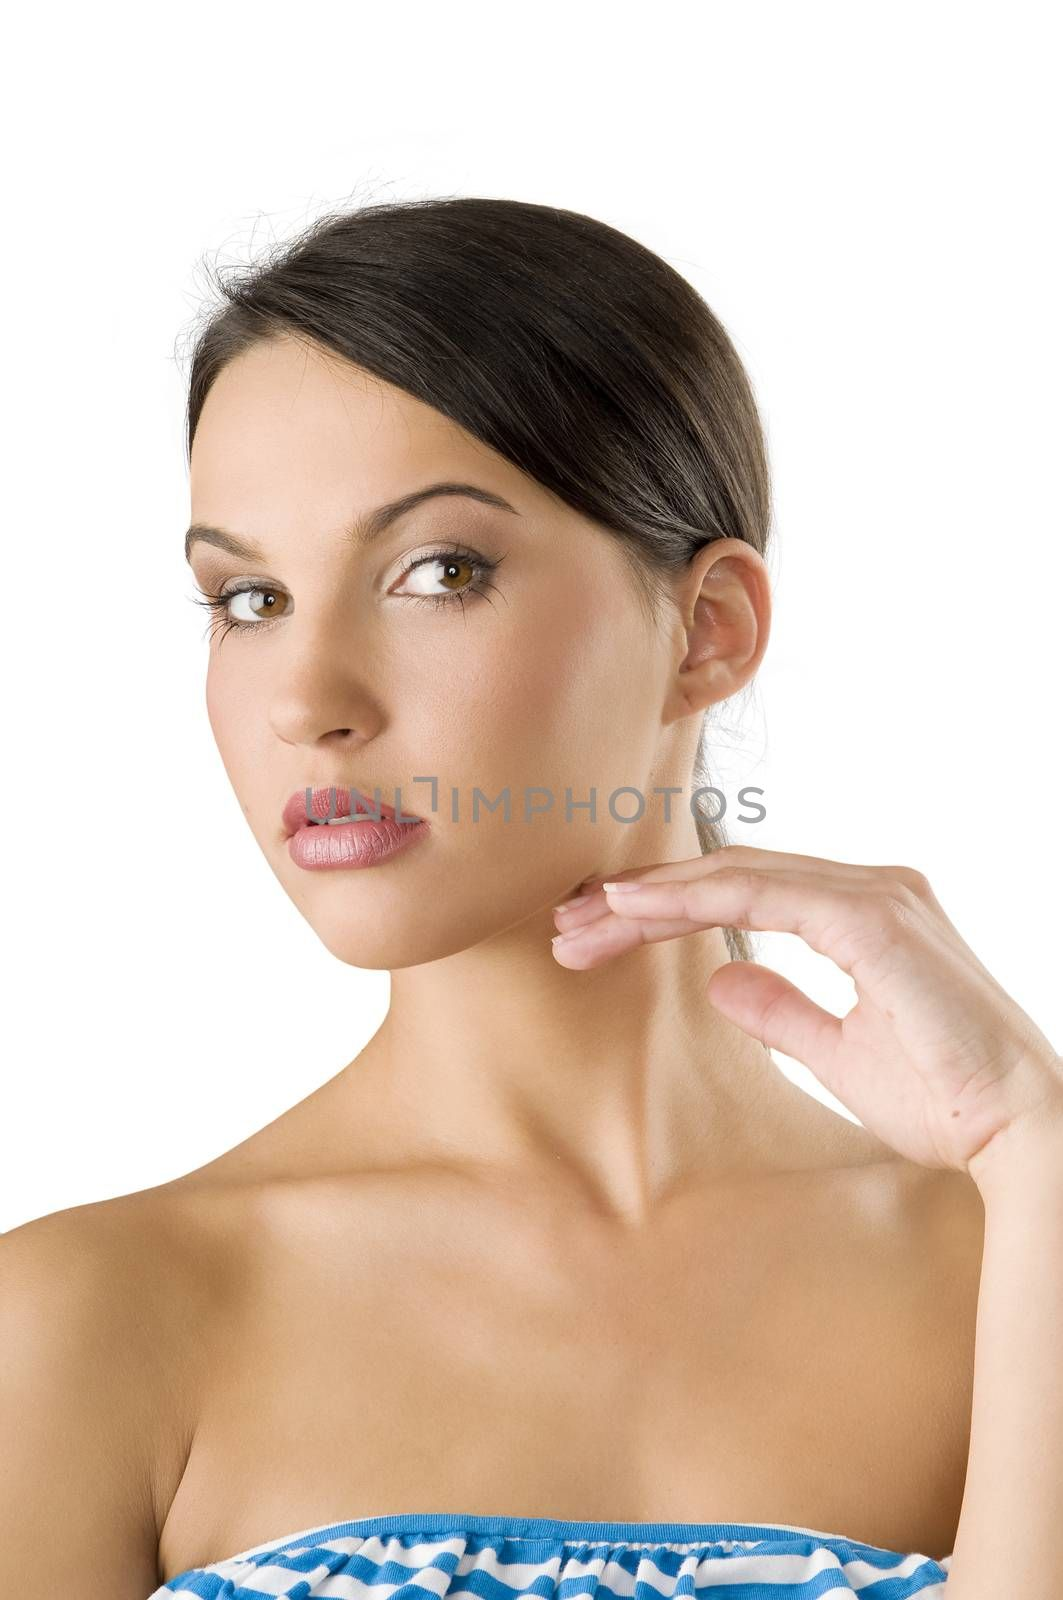 potrait of a young and beautiful woman with her hand near face